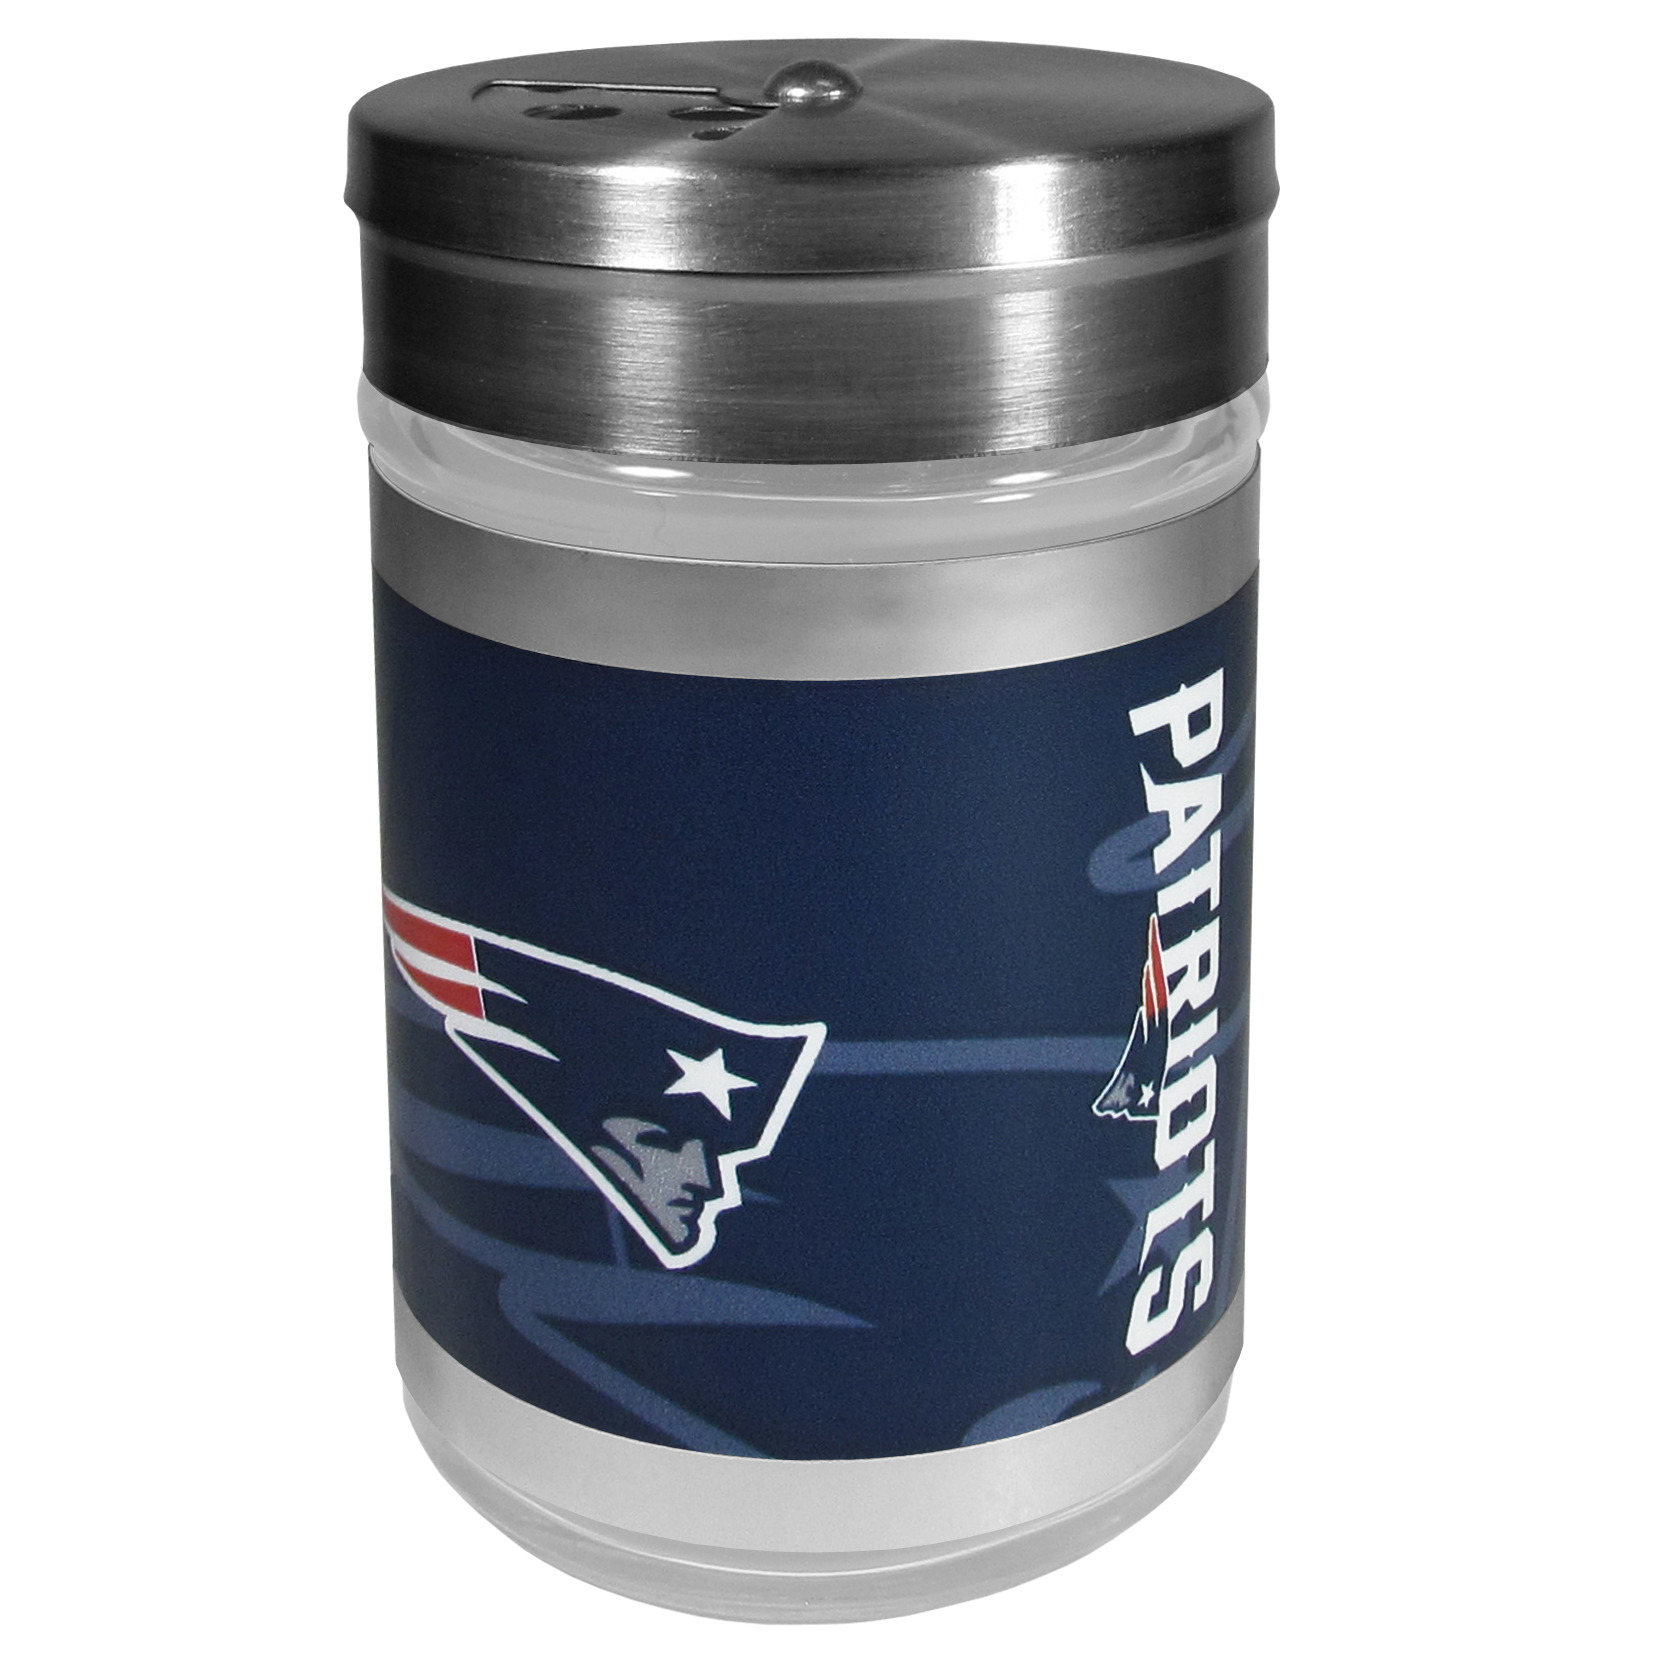 New England Patriots Tailgater Season Shakers - Spice it up with our New England Patriots tailgater season shakers! This compact shaker is 2 inch tall with a twist top that closes off the holes at the top making it perfect for travel preventing those messy spills. The shaker has wide holes perfect for keeping your pepper seeds or cheese toppings. The bright team graphics will make you the envy of the other fans while you are grilling up your tailgating goodies.